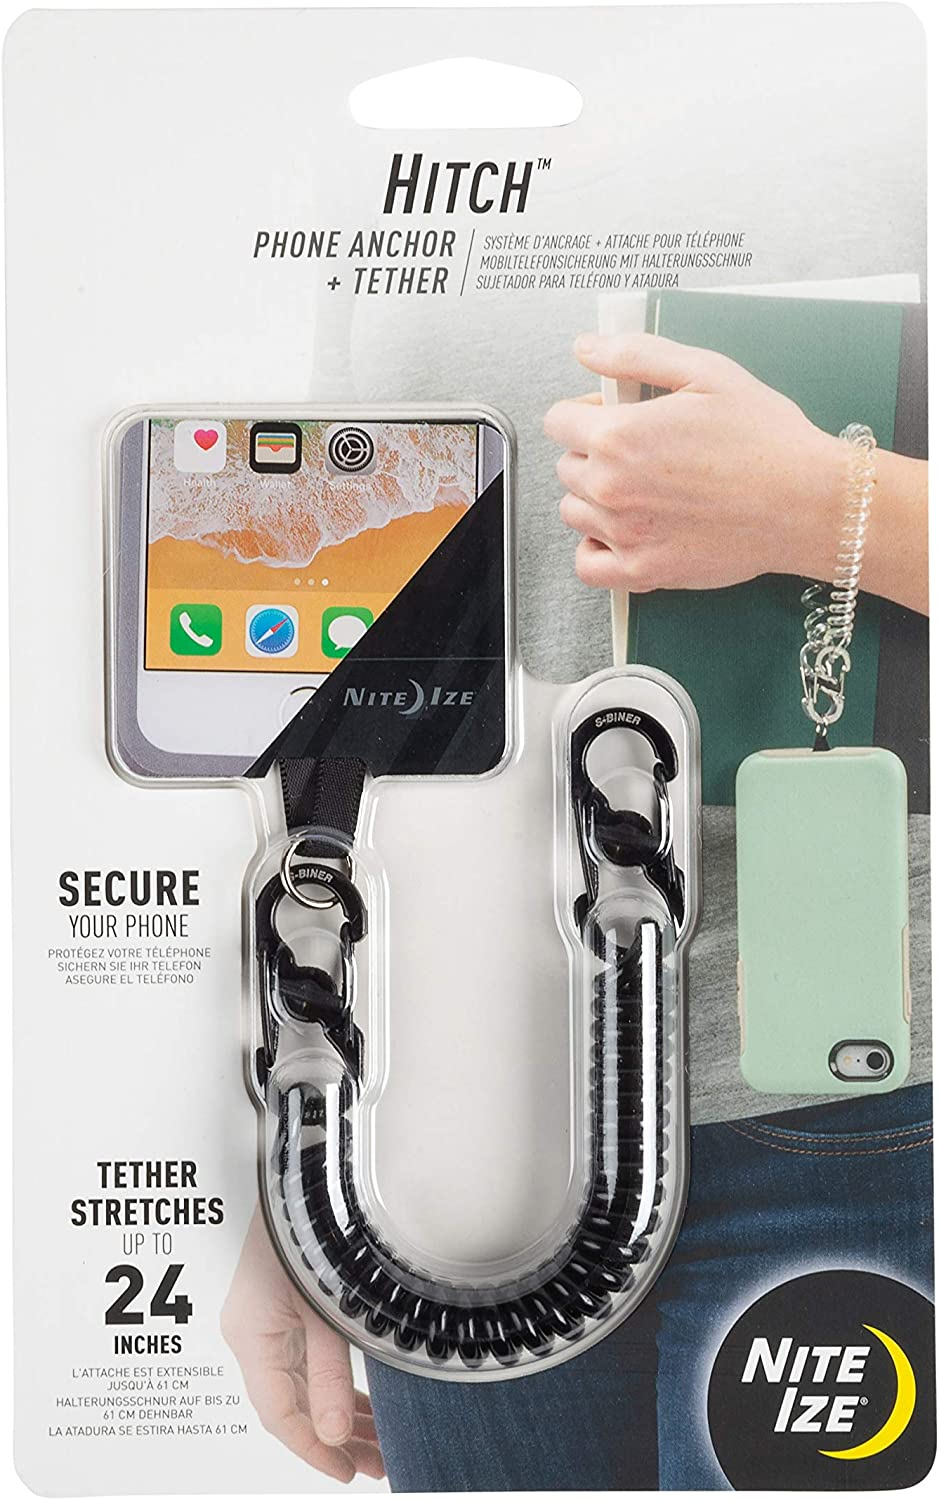 Nite Ize Hitch Plus Tether - Phone Case Anchor and Tether for Drop Protection - Black Tether (HPAT-01-R7)